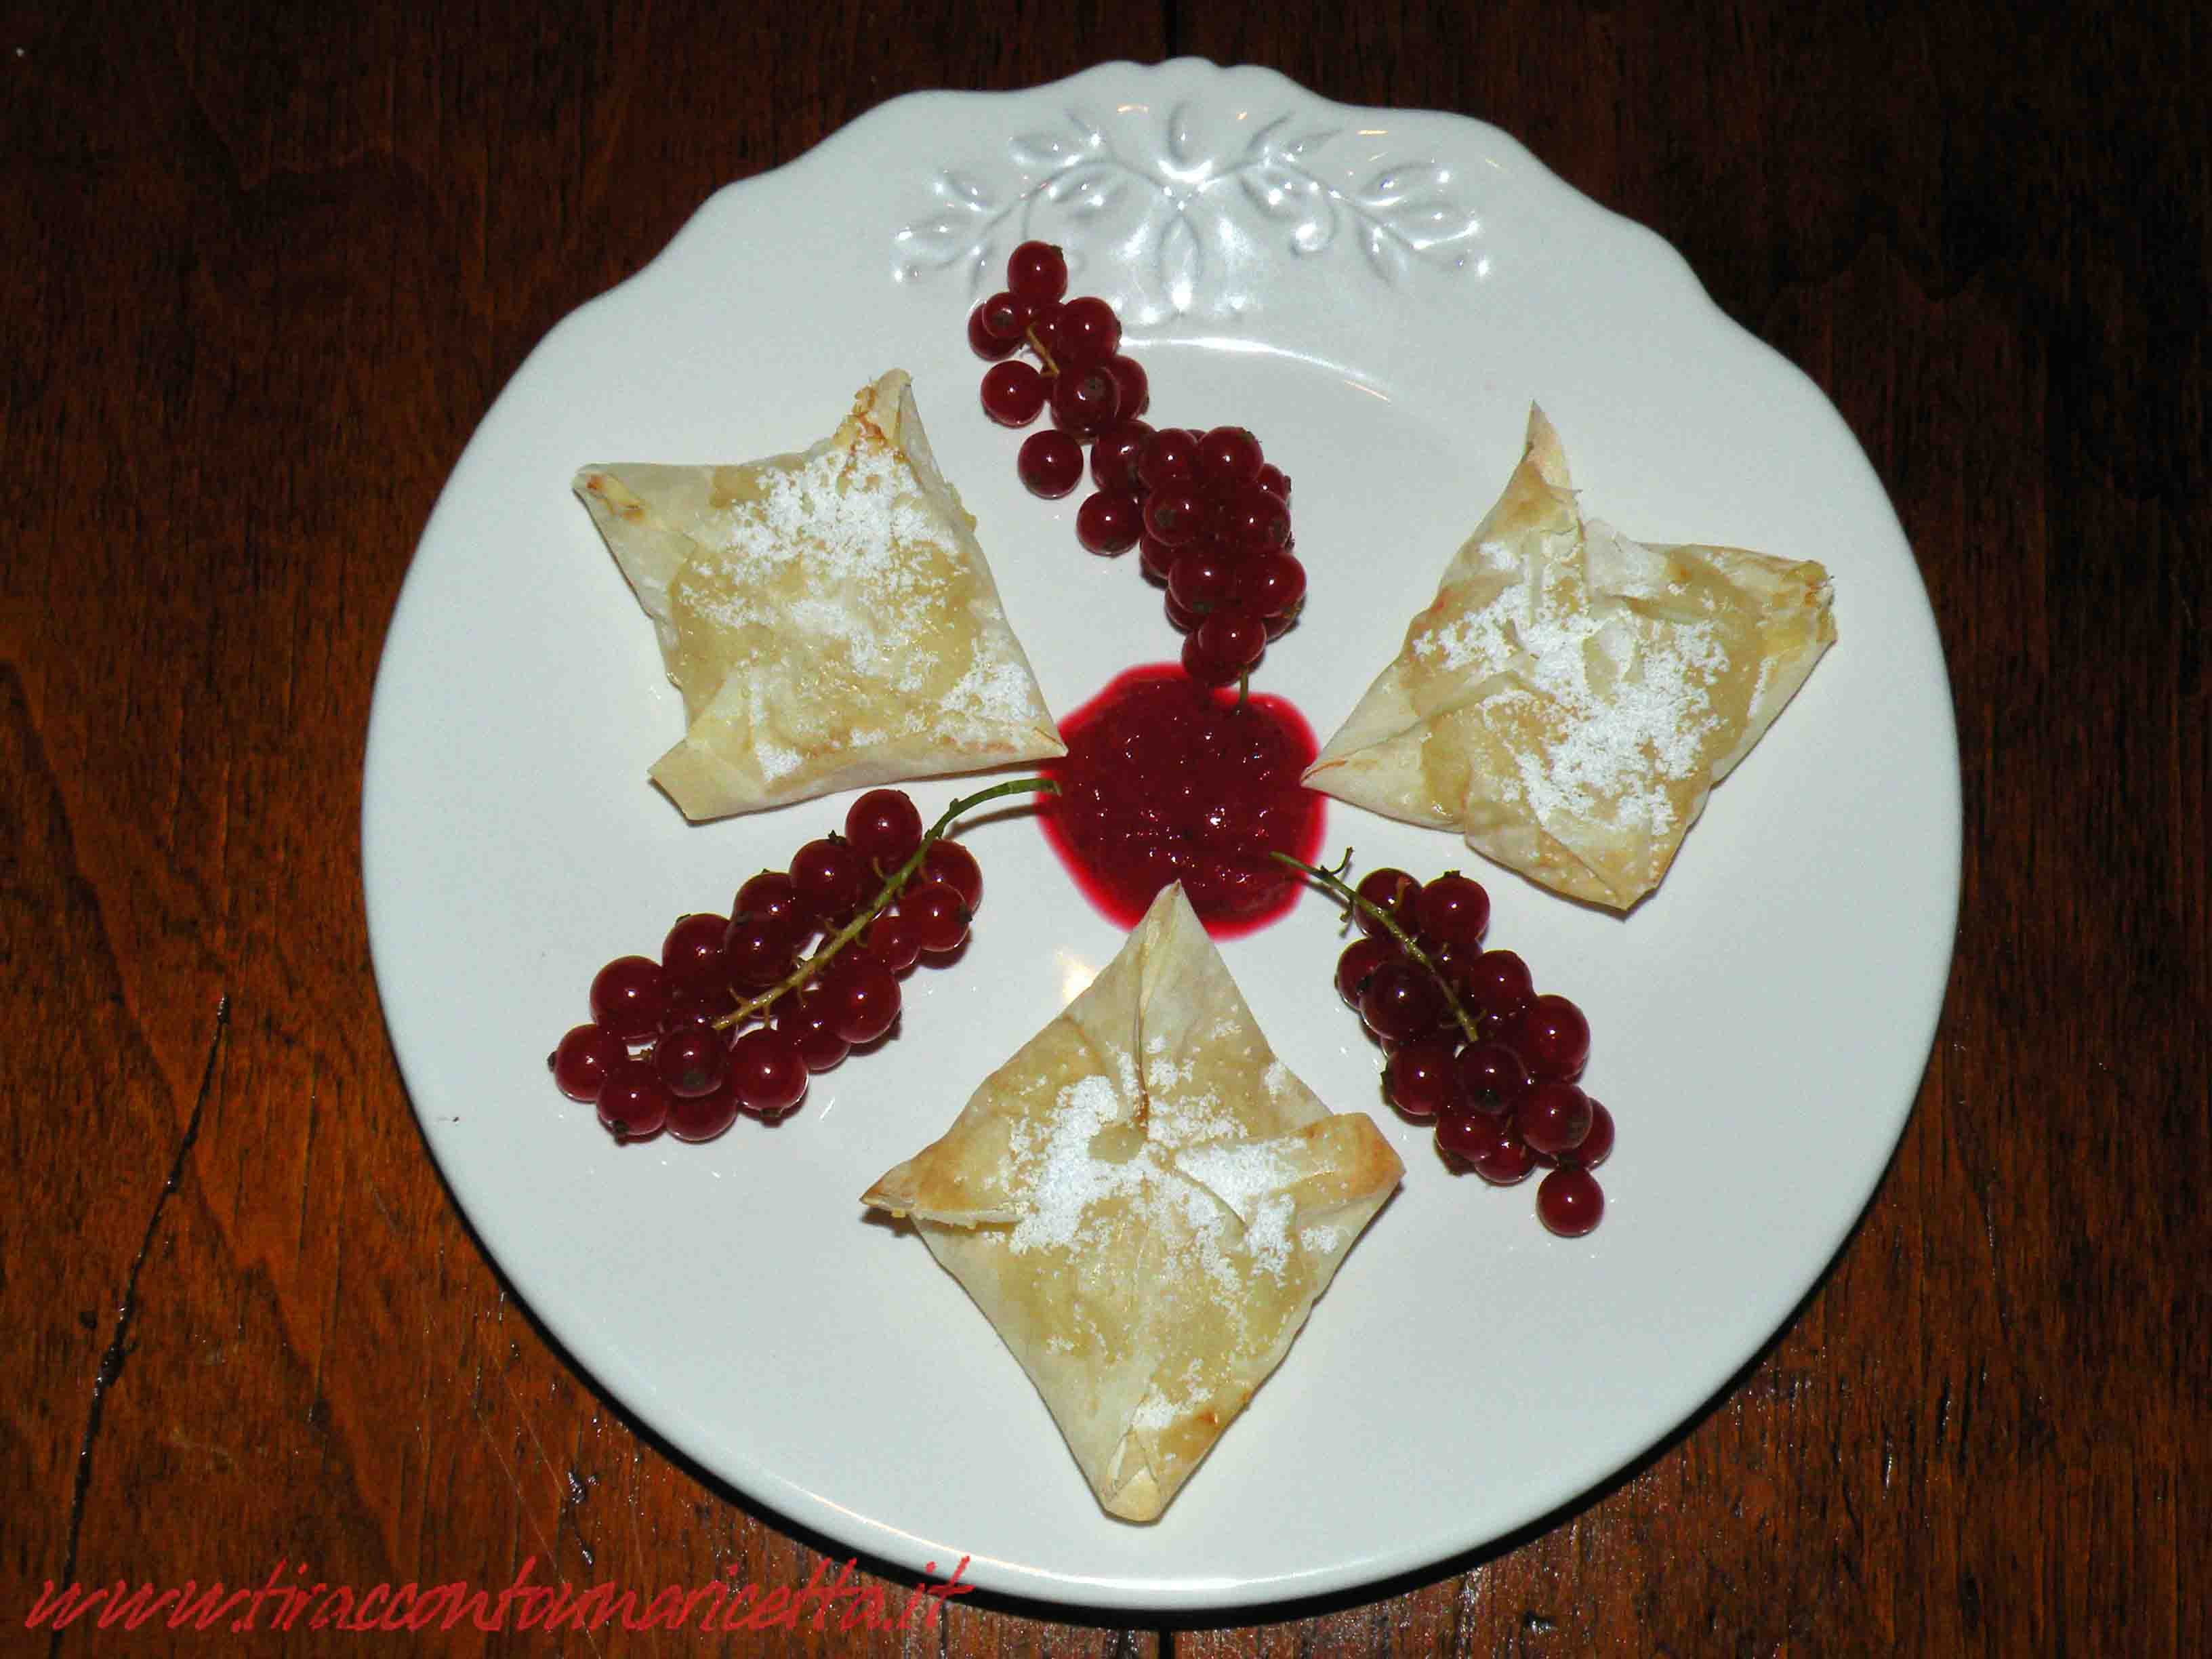 Dumplings with cottage cheese, custard and red currant sauce